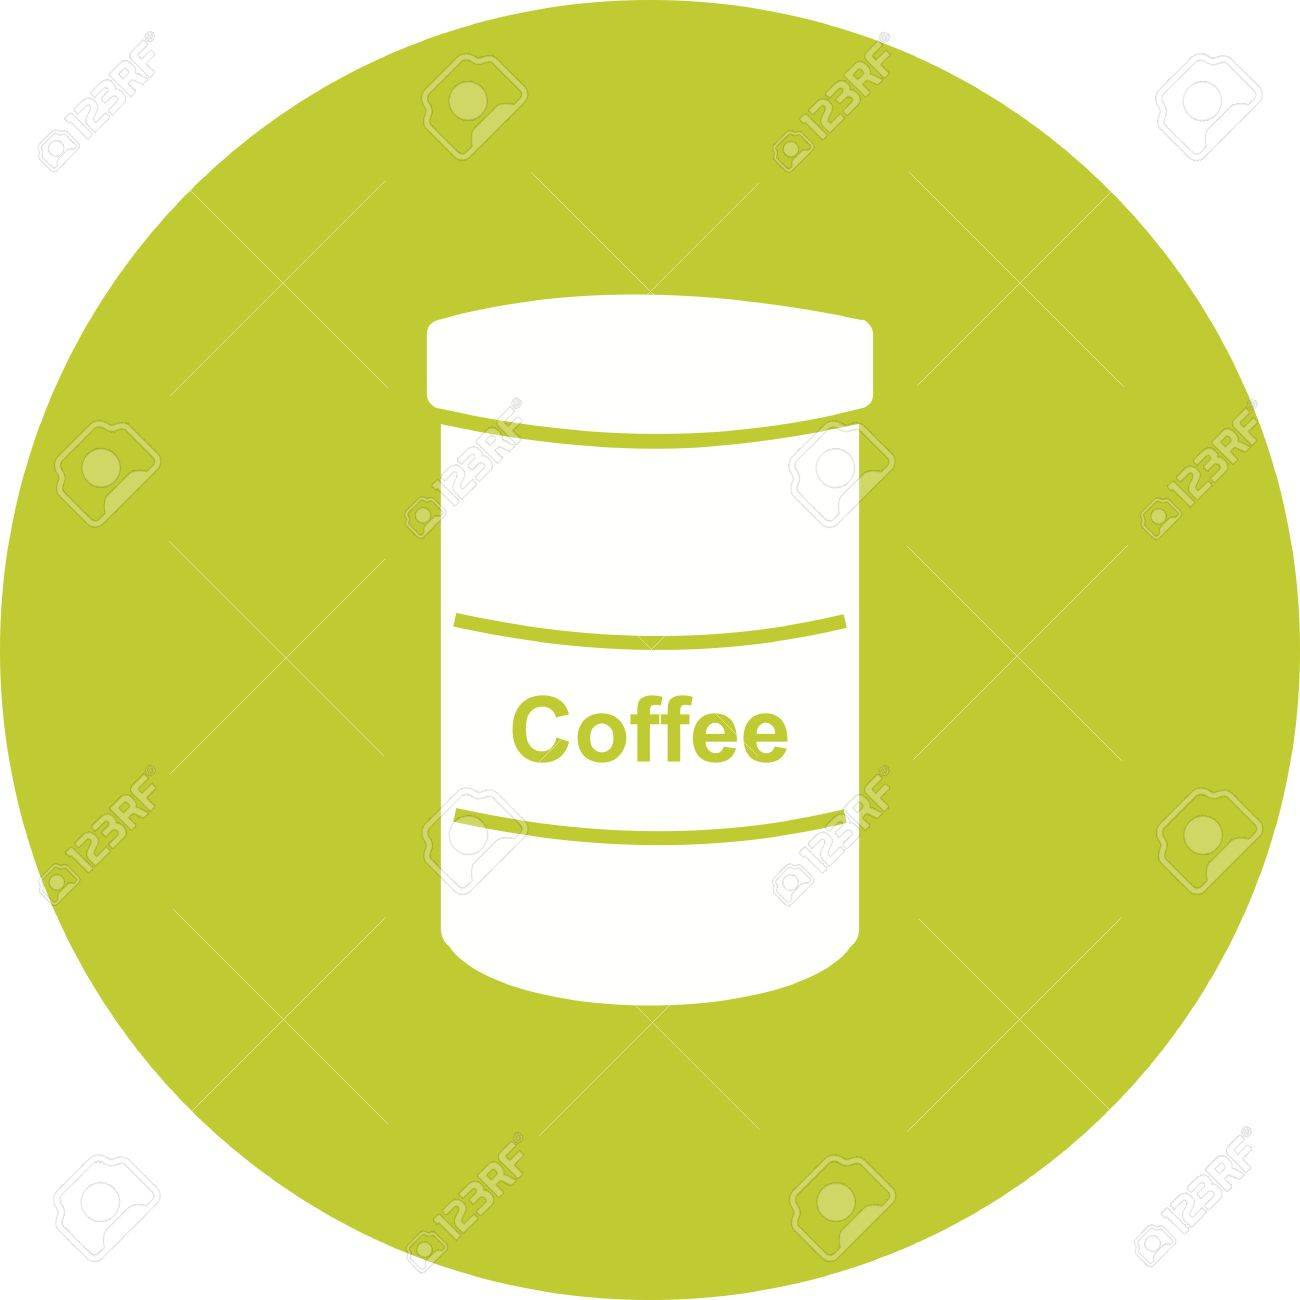 Coffee, bottle, jar icon vector image  Can also be used for food